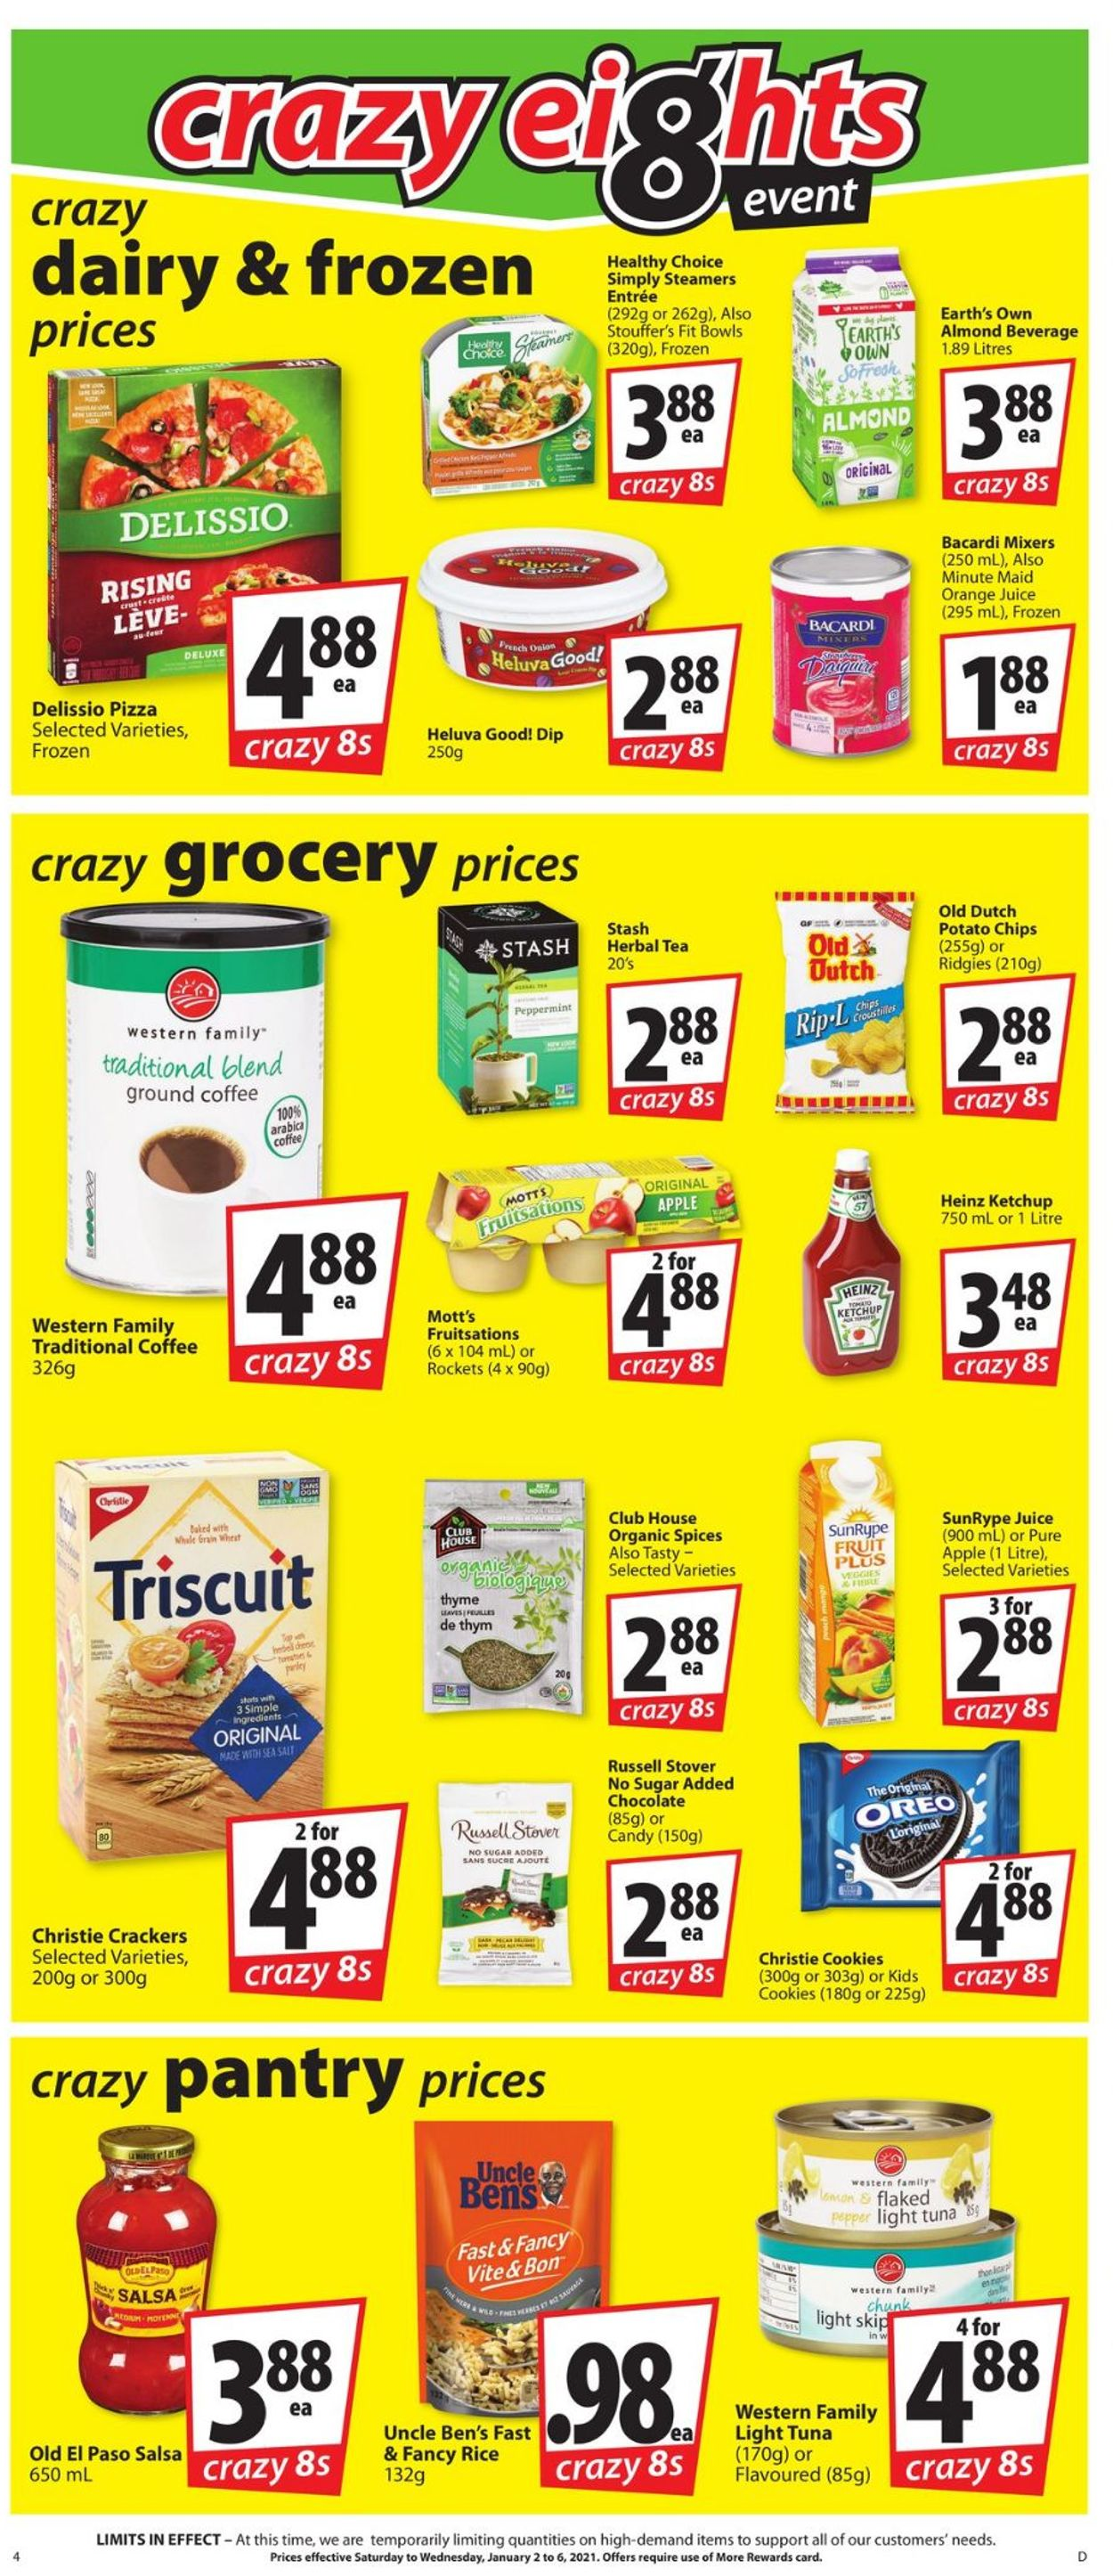 Save-On-Foods - Crazy Eigths 2021 Flyer - 01/02-01/06/2021 (Page 4)